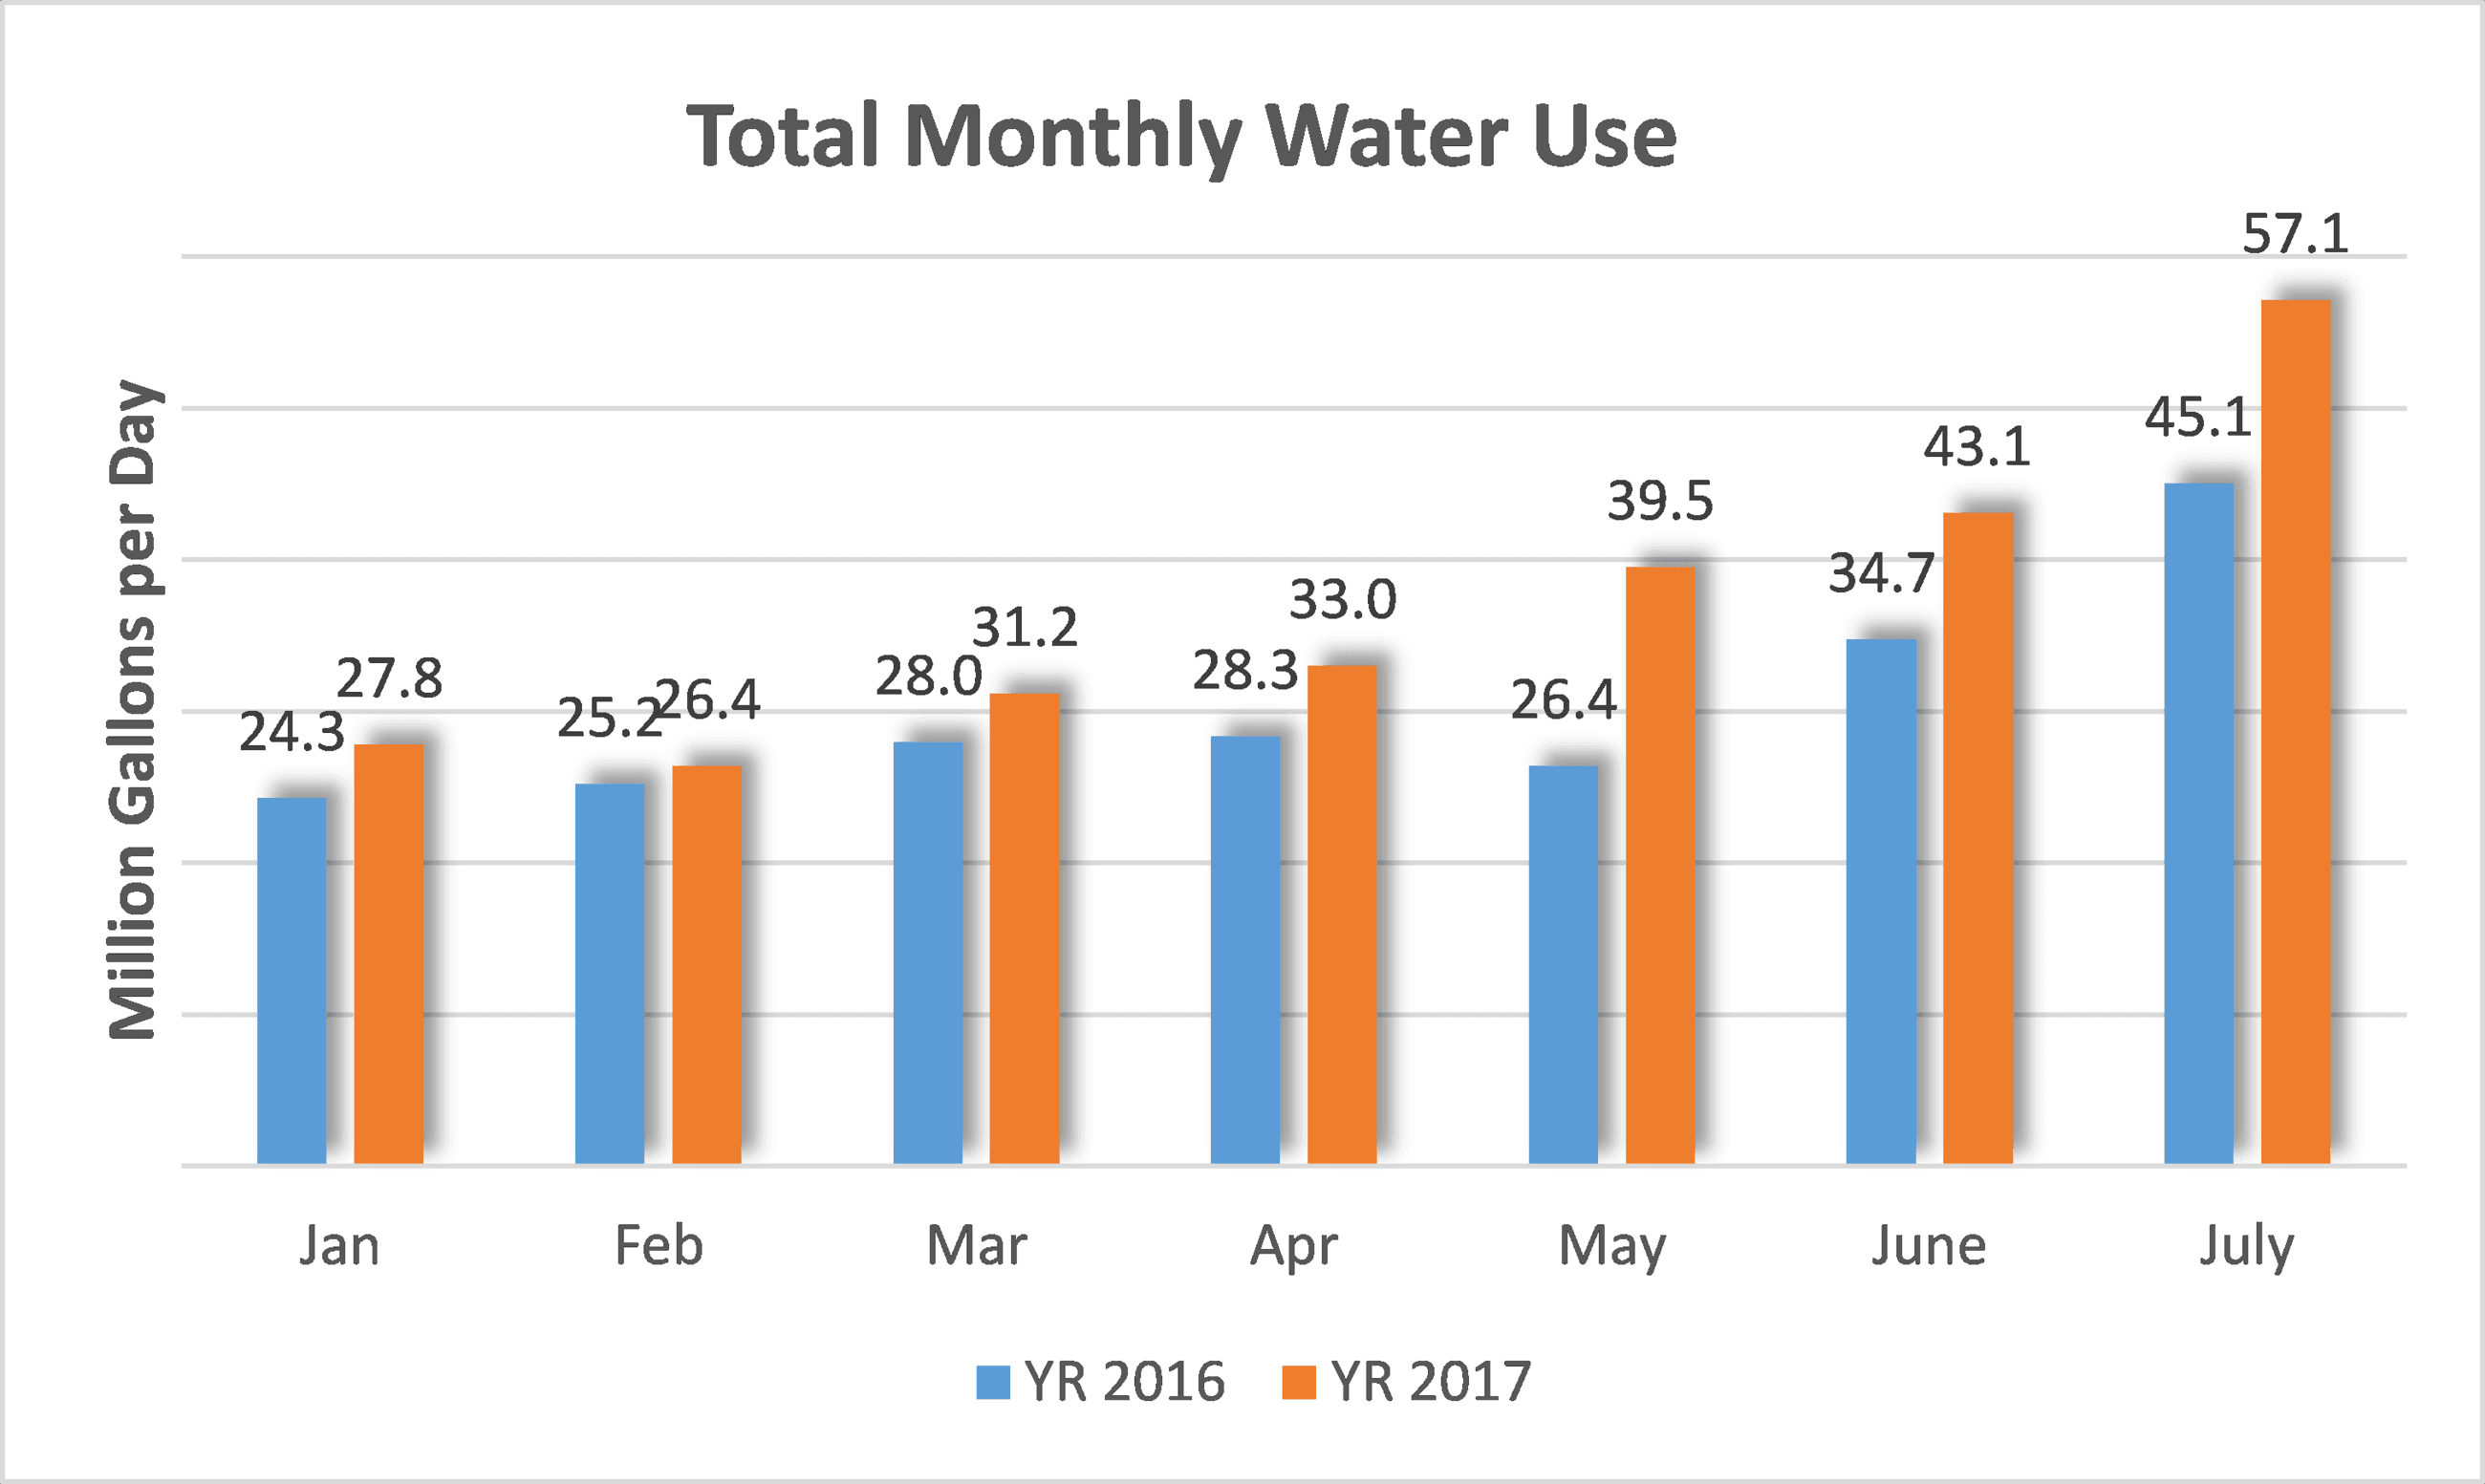 Total Monthly Water Usage